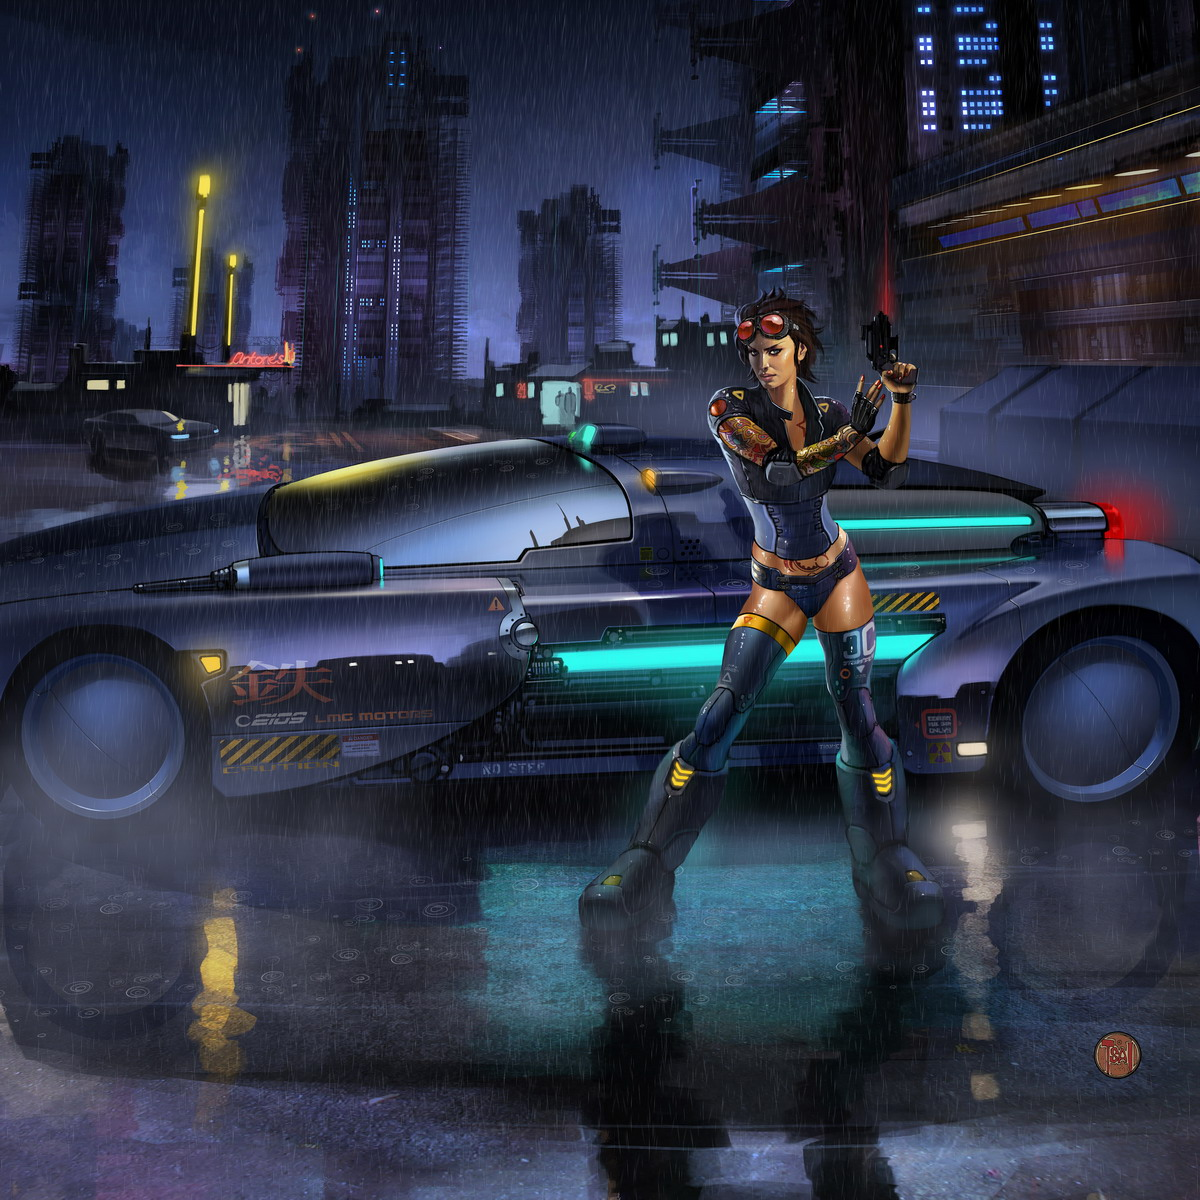 blade racer by francis001